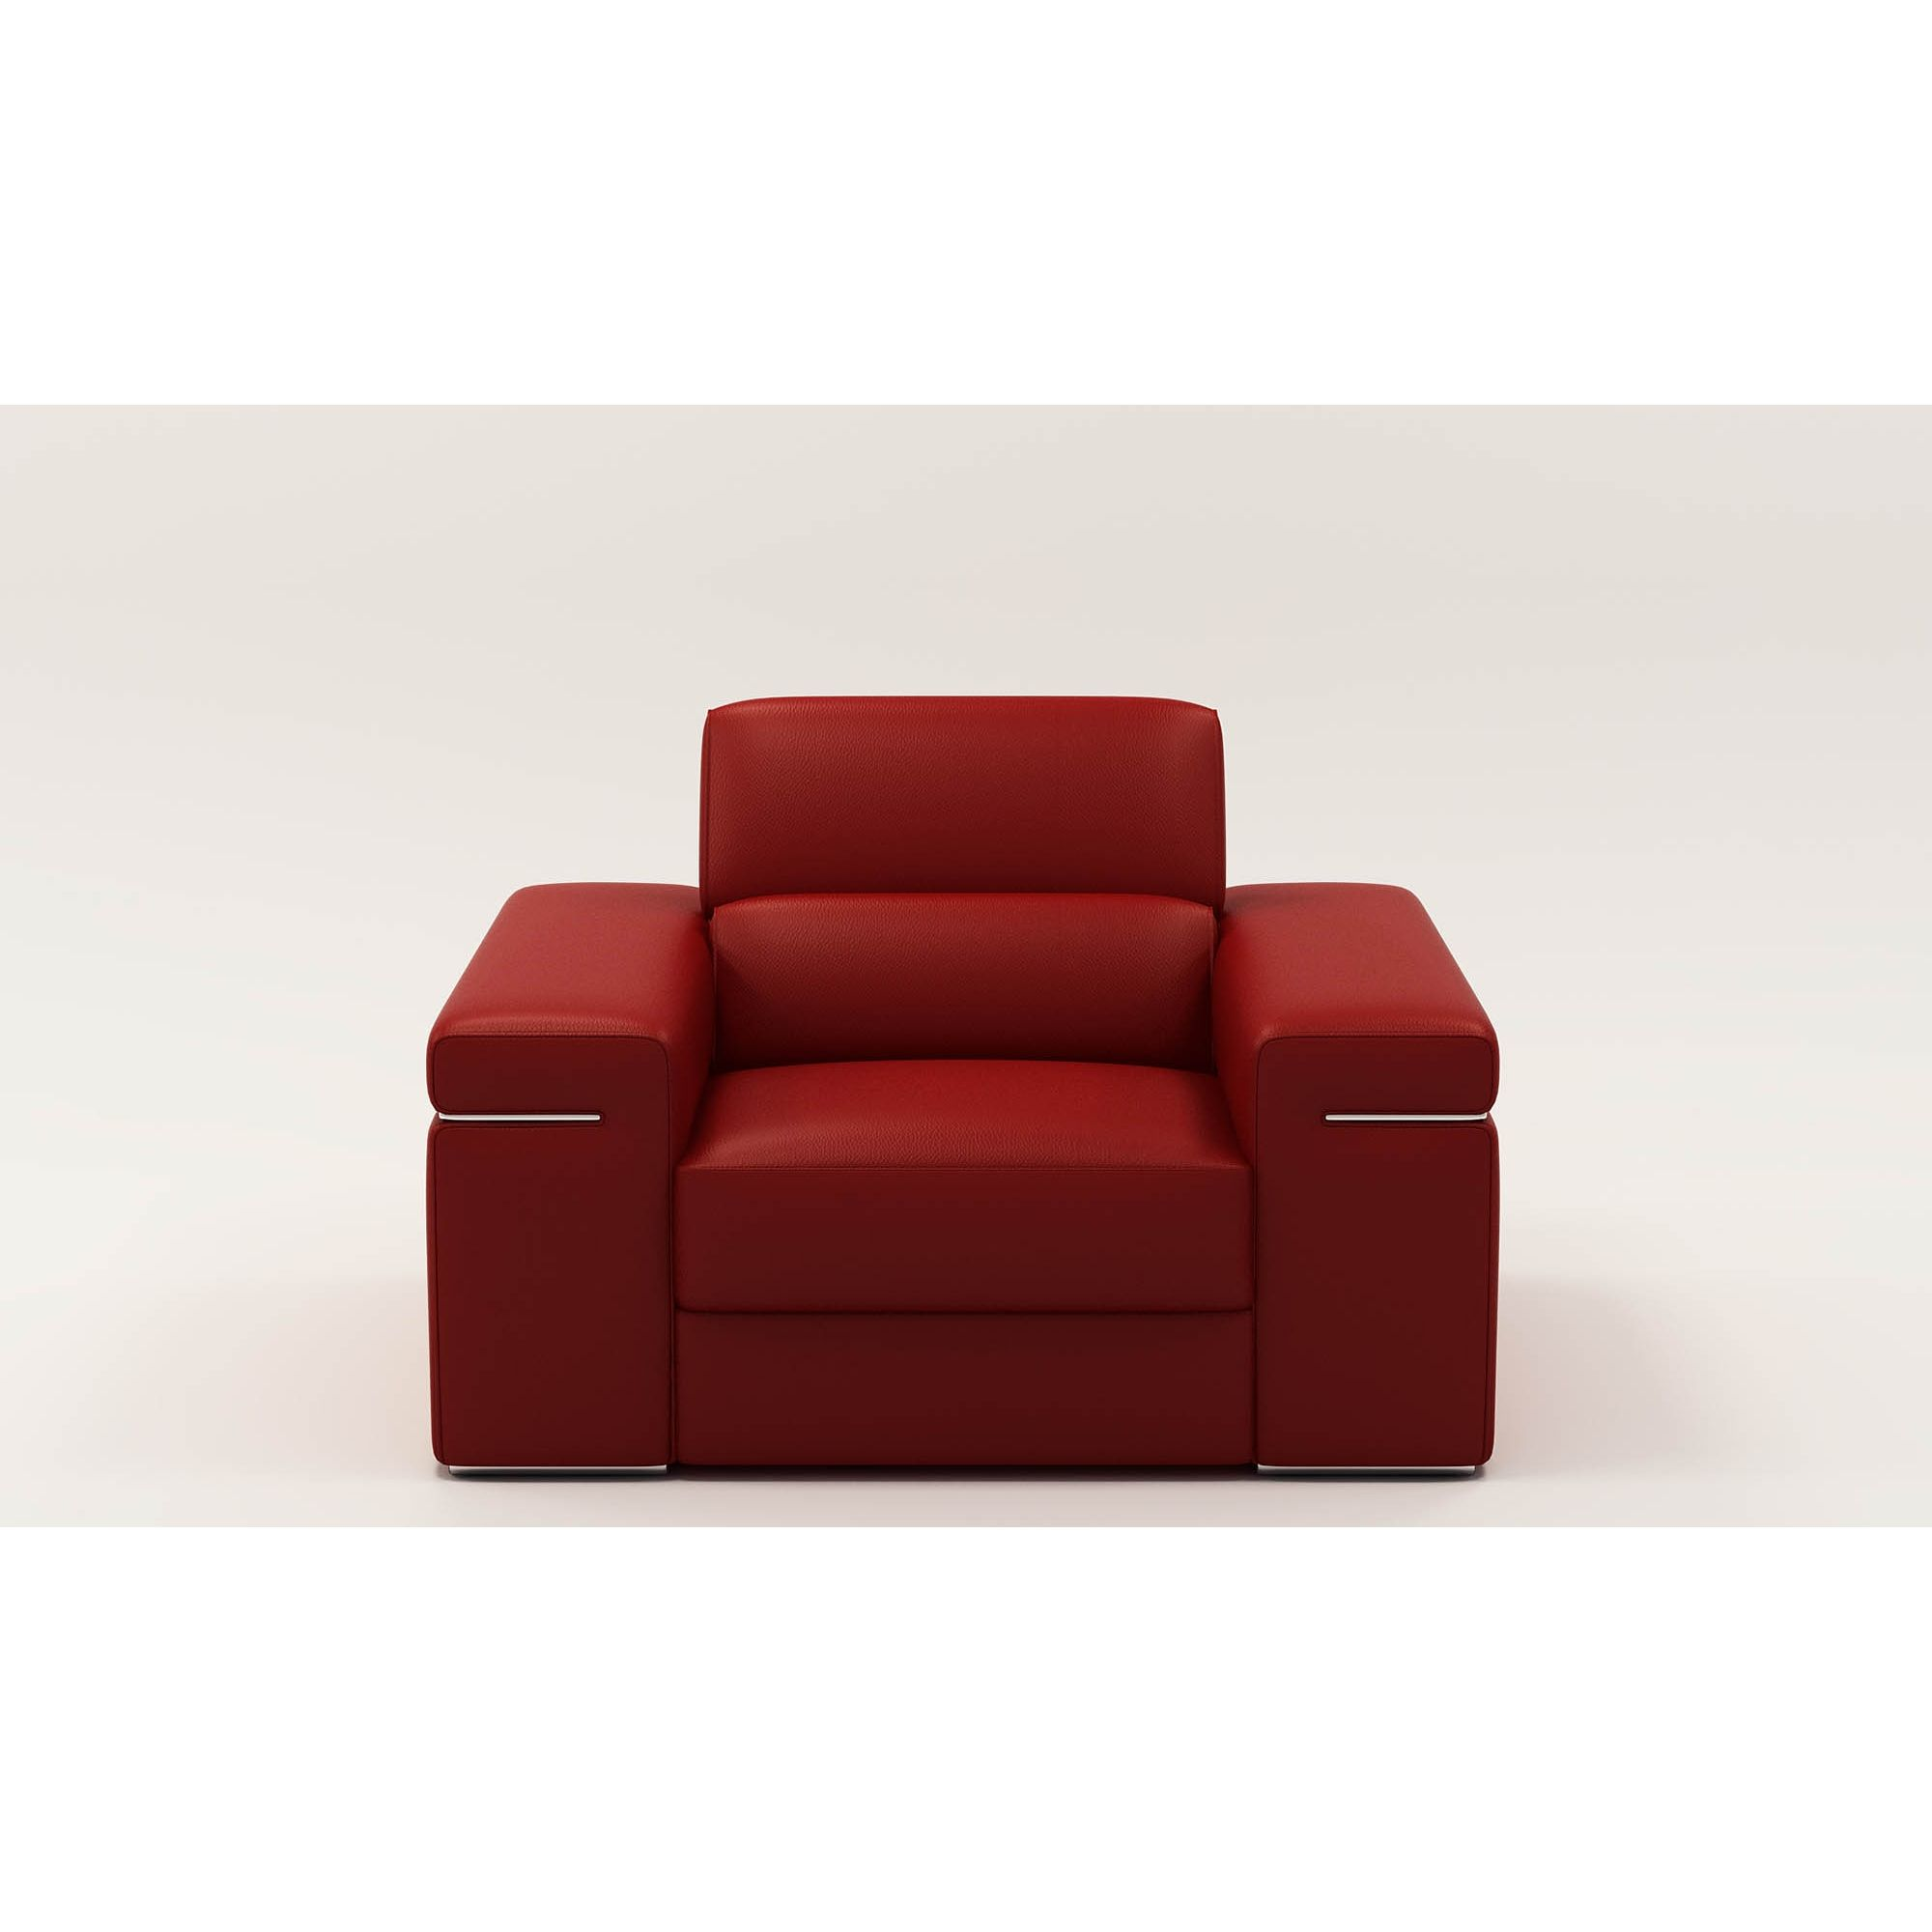 deco in paris 5 fauteuil cuir rouge thomas thomas 1p pu rouge. Black Bedroom Furniture Sets. Home Design Ideas